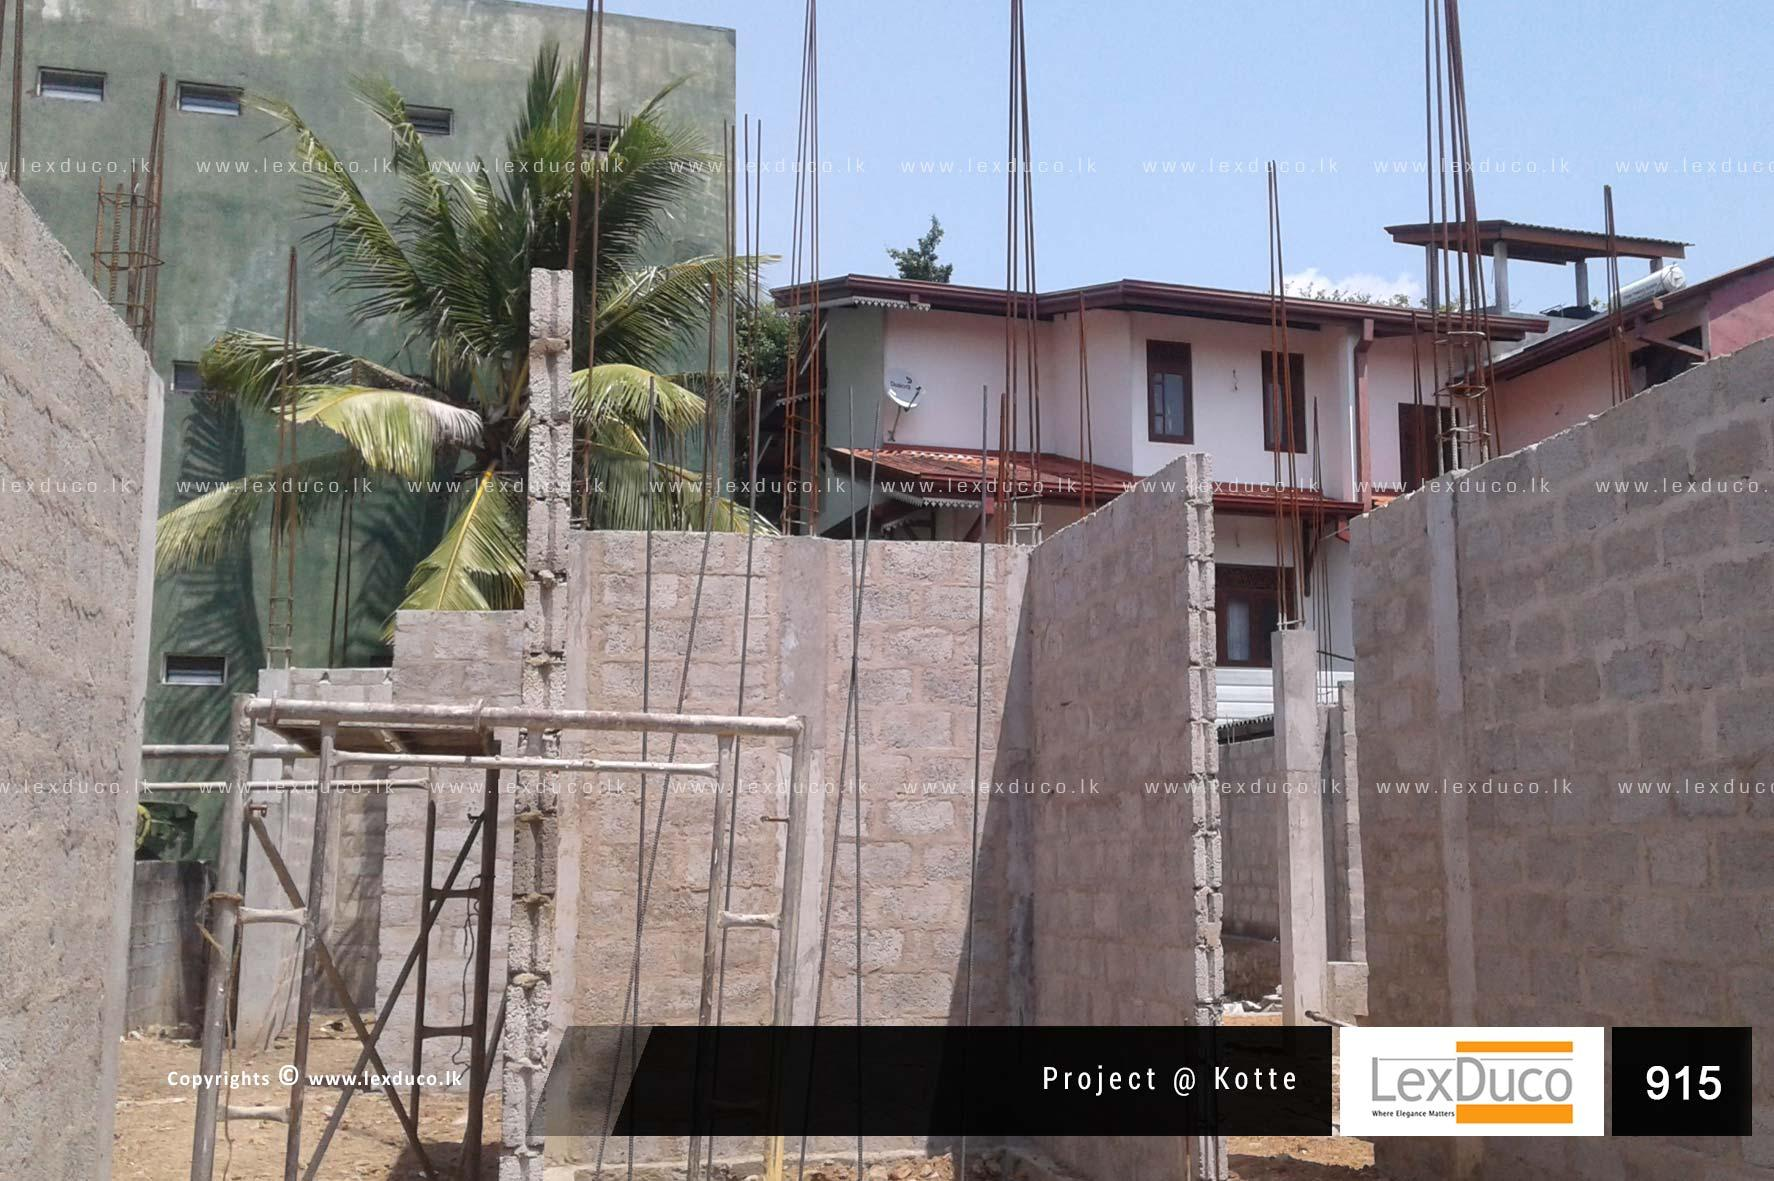 Residential Housing Project at Kotte | Lex Duco